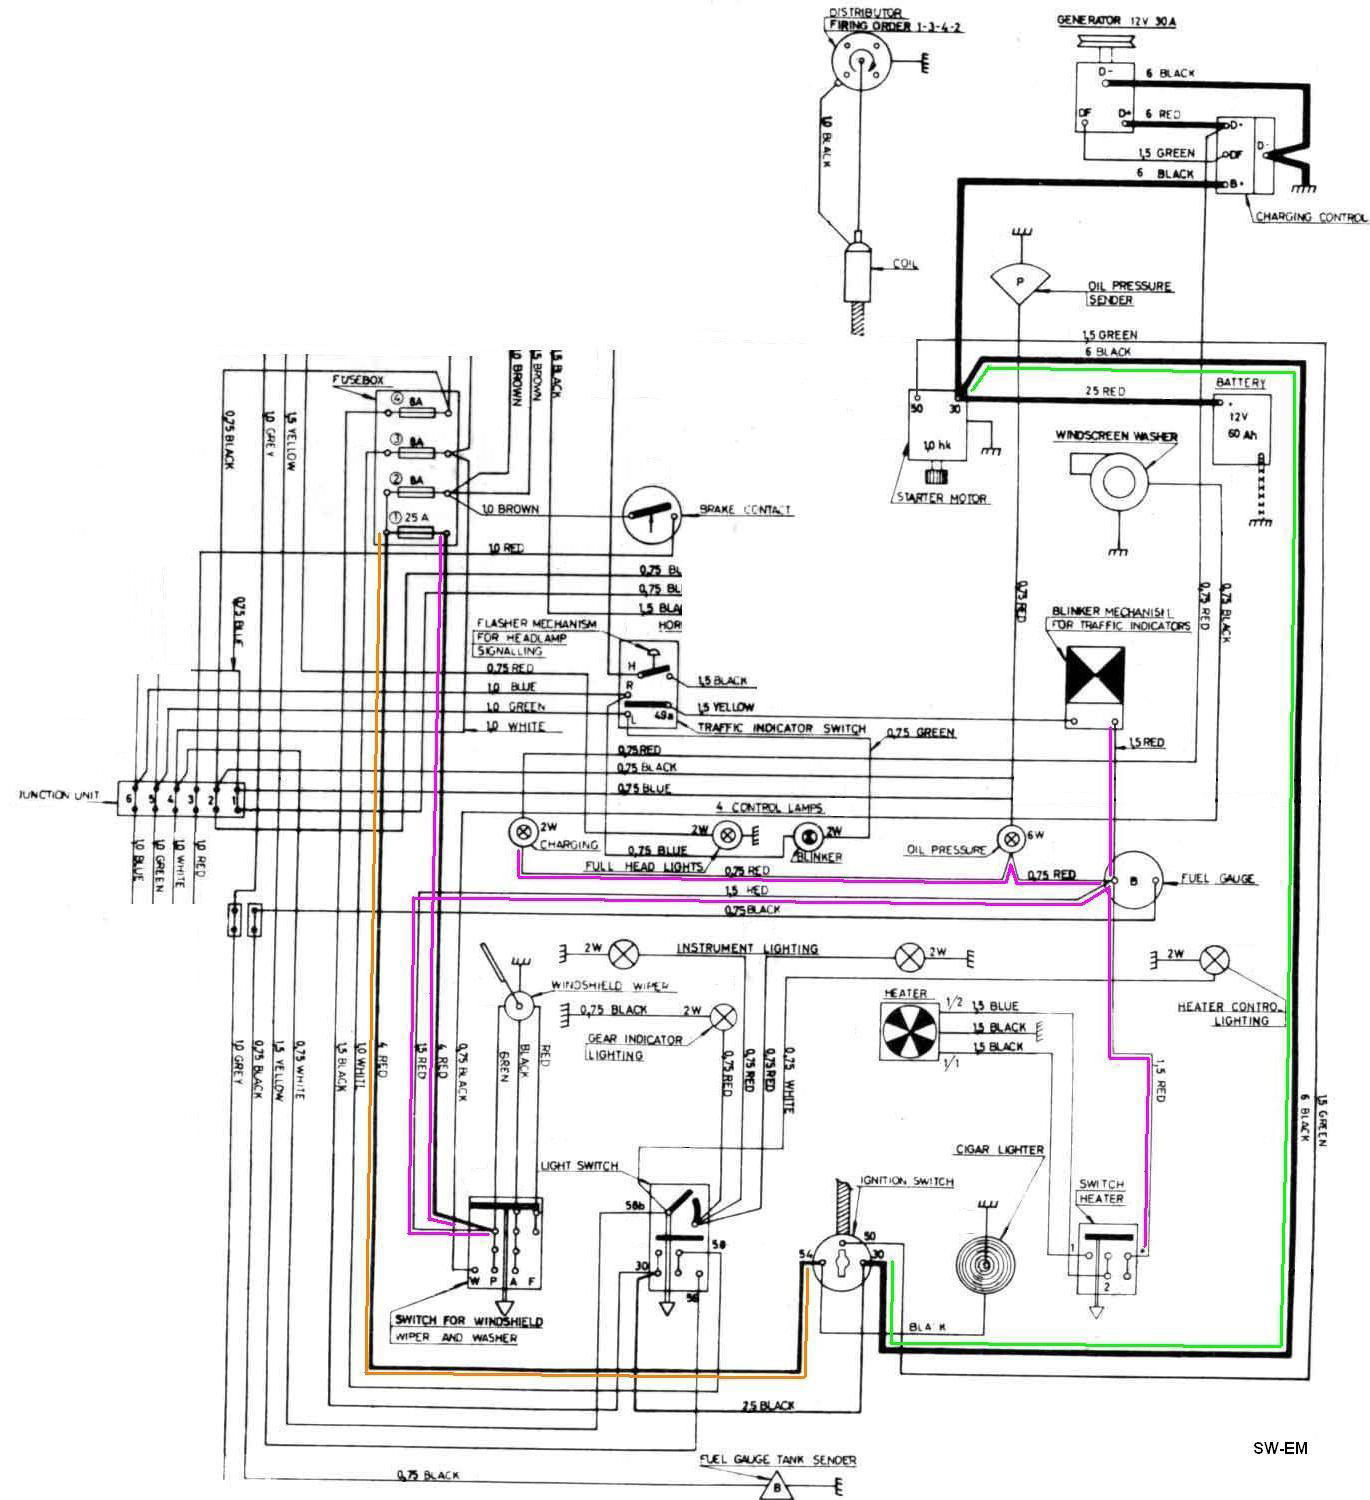 IGN SW wiring diag 122 markup 1800 ignition wiring swedish vs british design car ignition switch wiring diagram at gsmportal.co